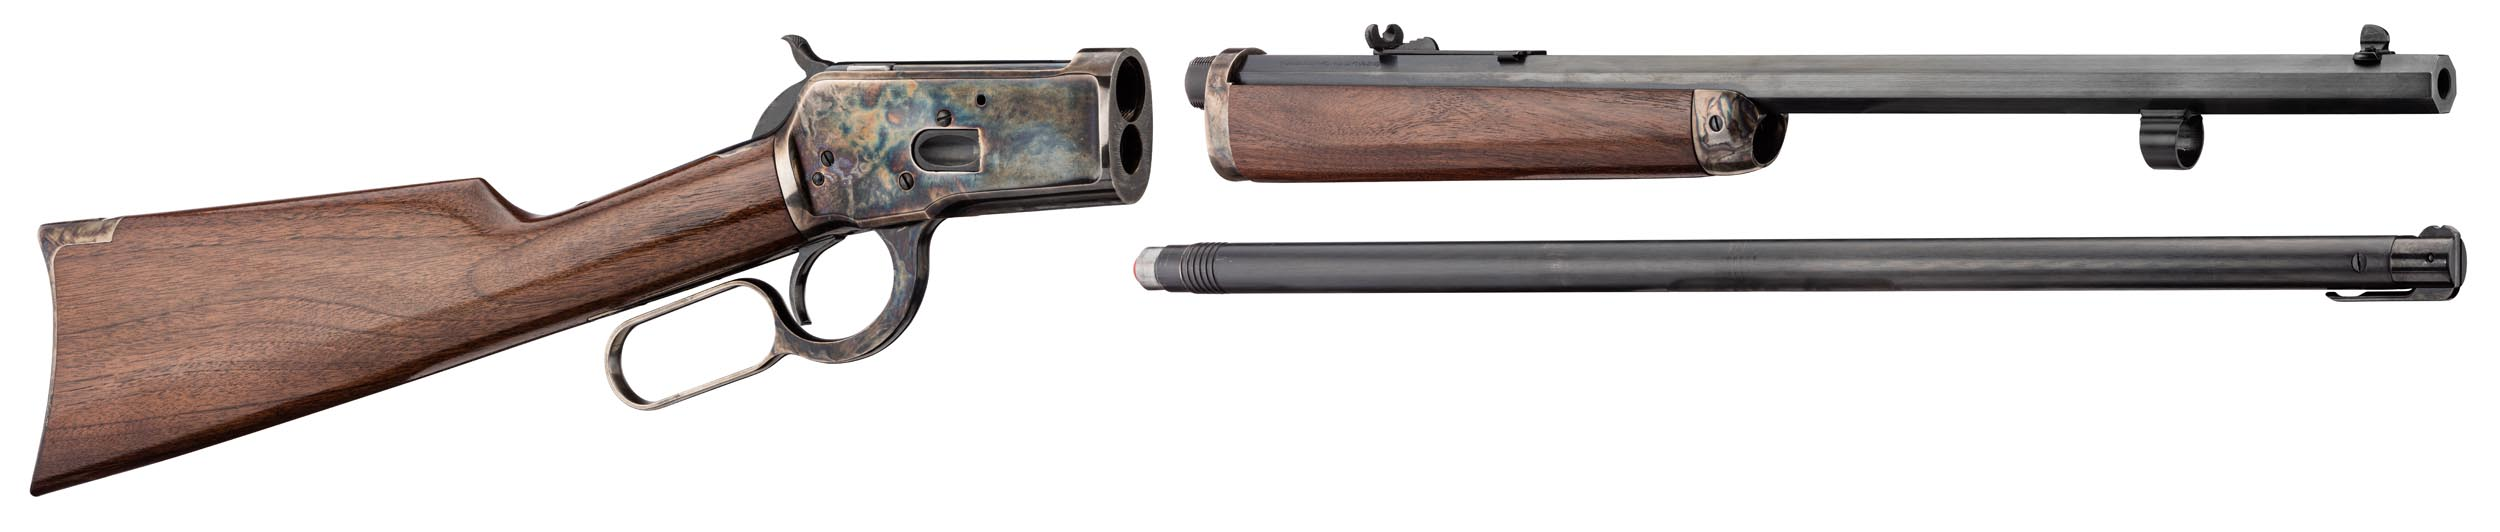 WE172-5 Chiappa 1892 Lever Action take down - Canon Octogonal - WE171